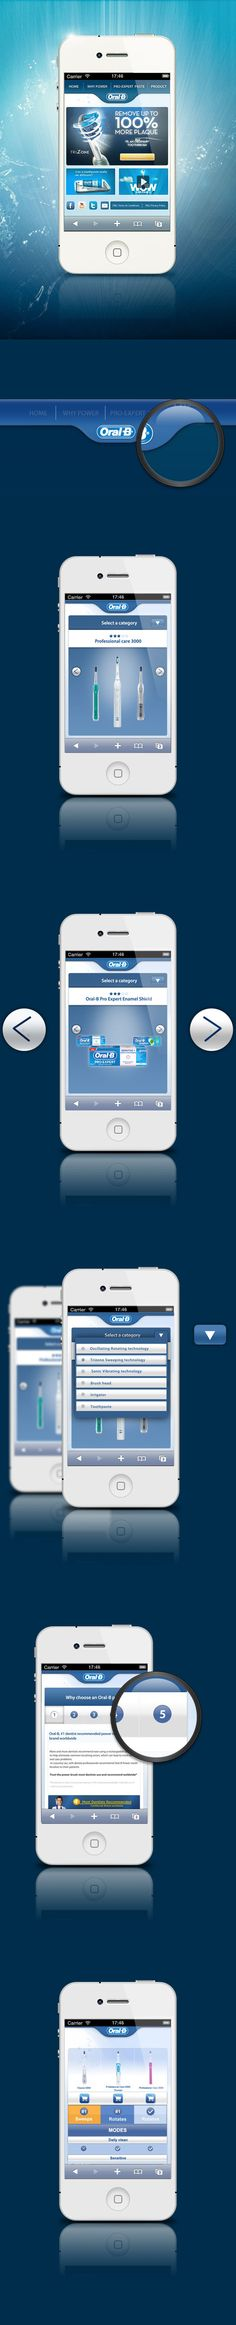 Oral-B  m.site by FIGMENTA , via Behance   ***   We've designed a completely new mobile website (mSite) for the Oral-B brand: a global template featuring a brand new comparison tool for Oral-B products, specifically designed for the UK market. Read